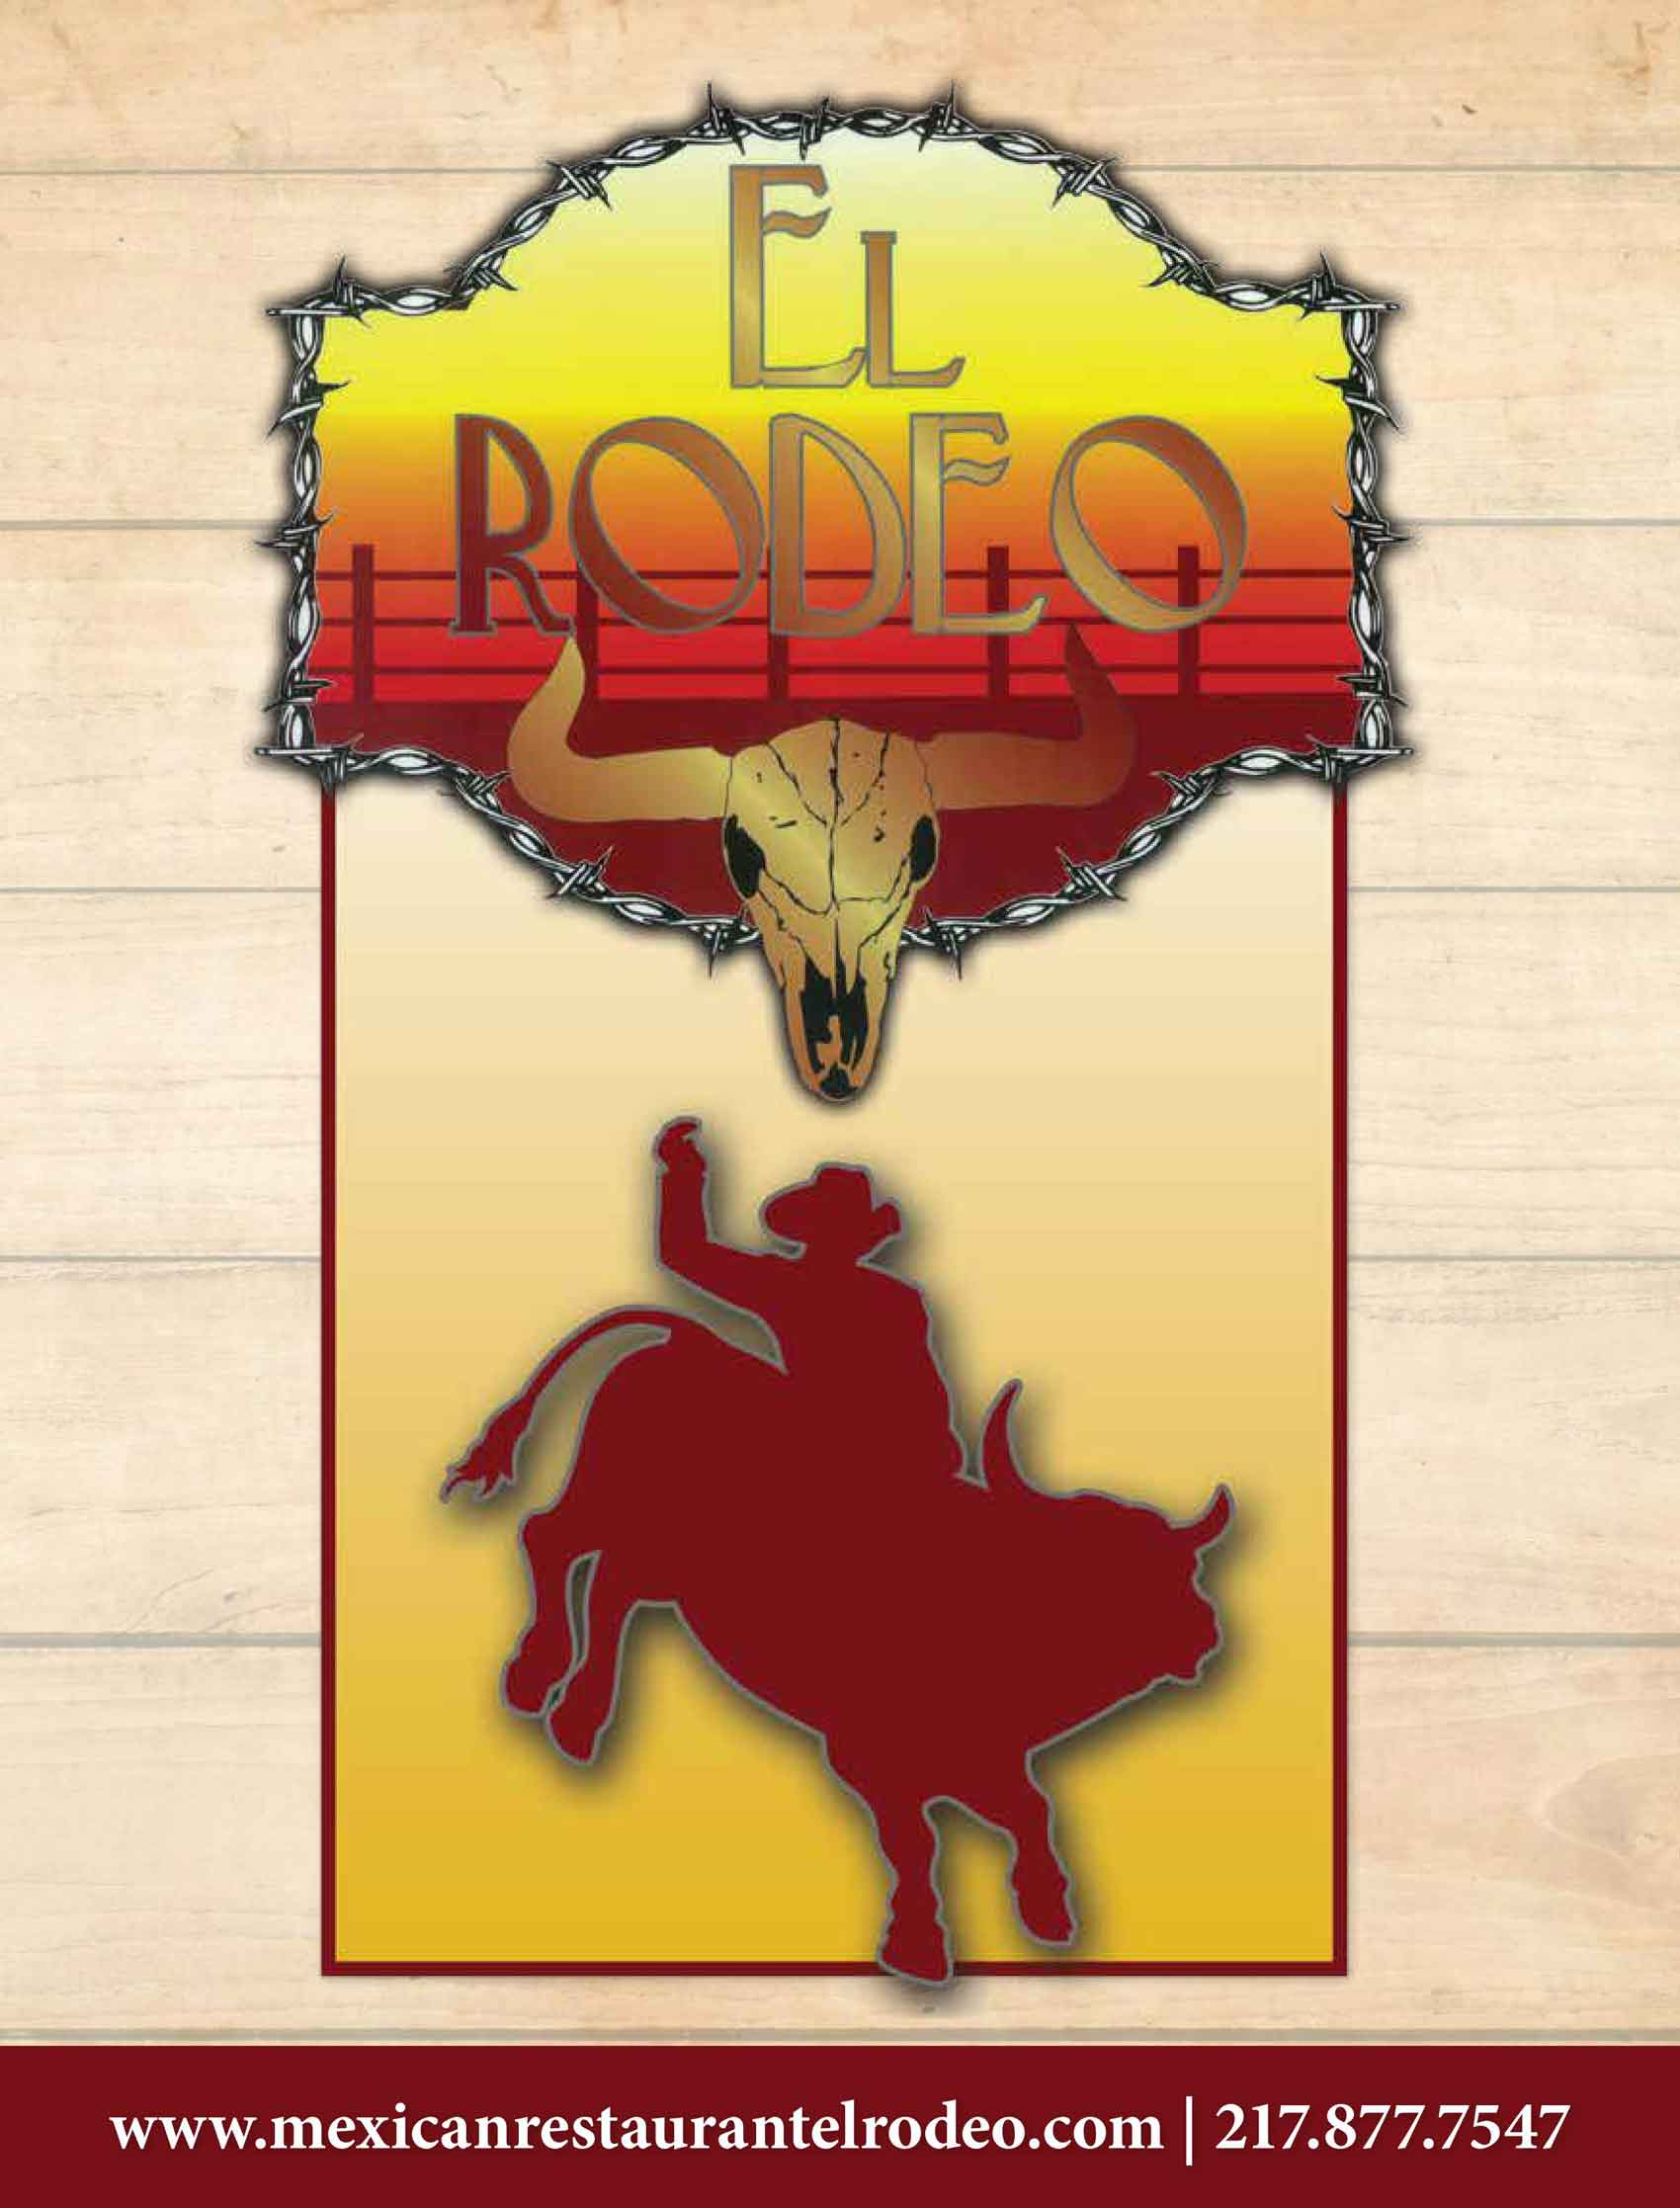 Rodeo Mexican Restaurant Menu